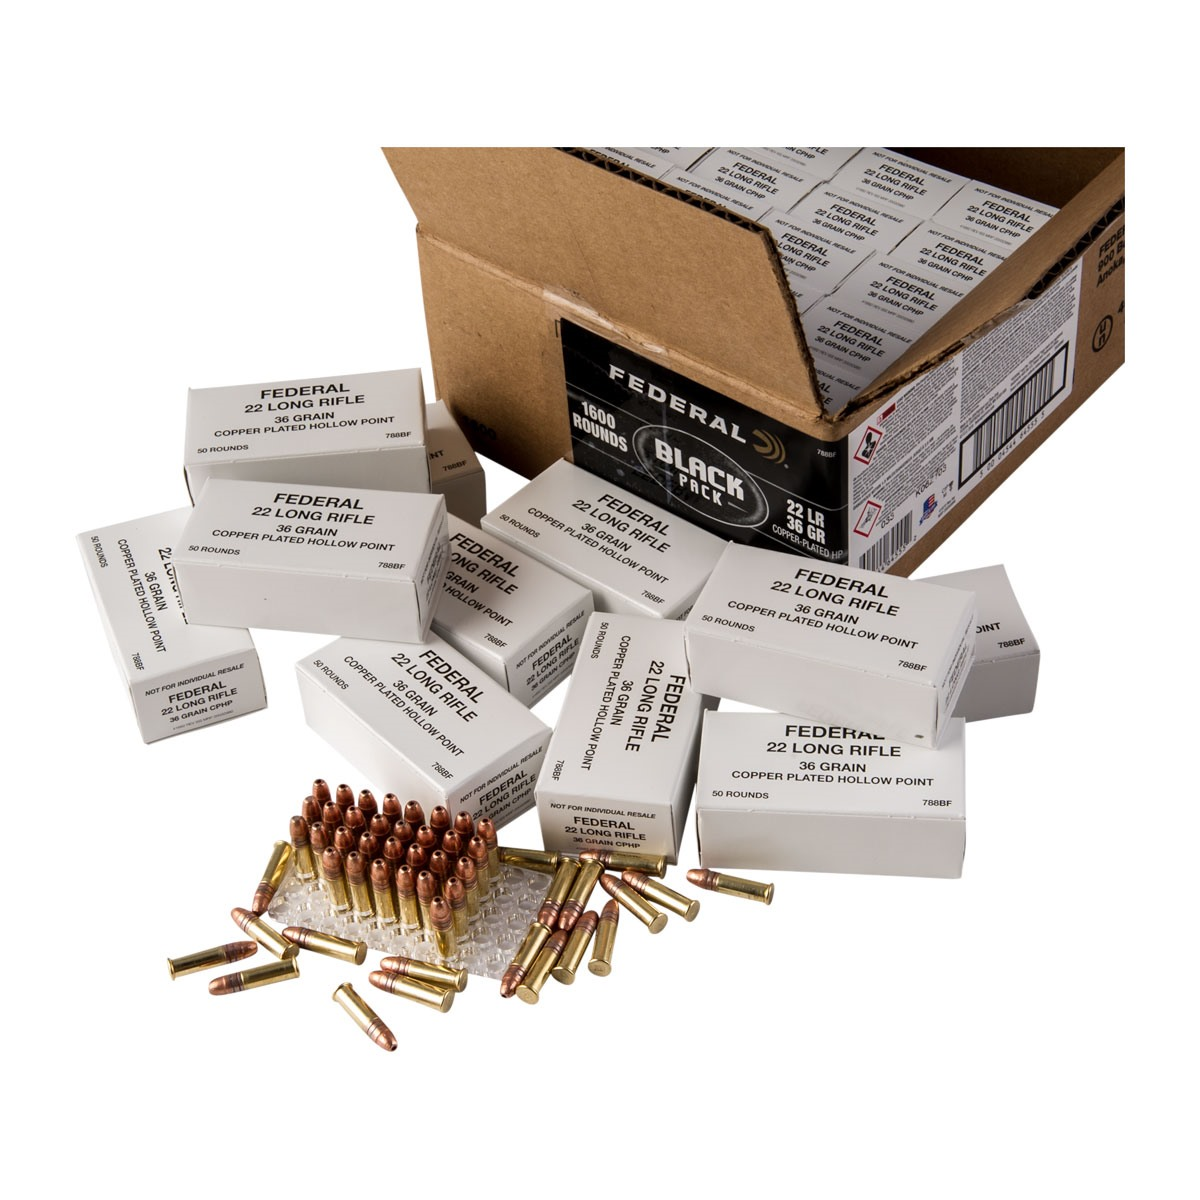 federal black label 22 long rifle ammo brownells